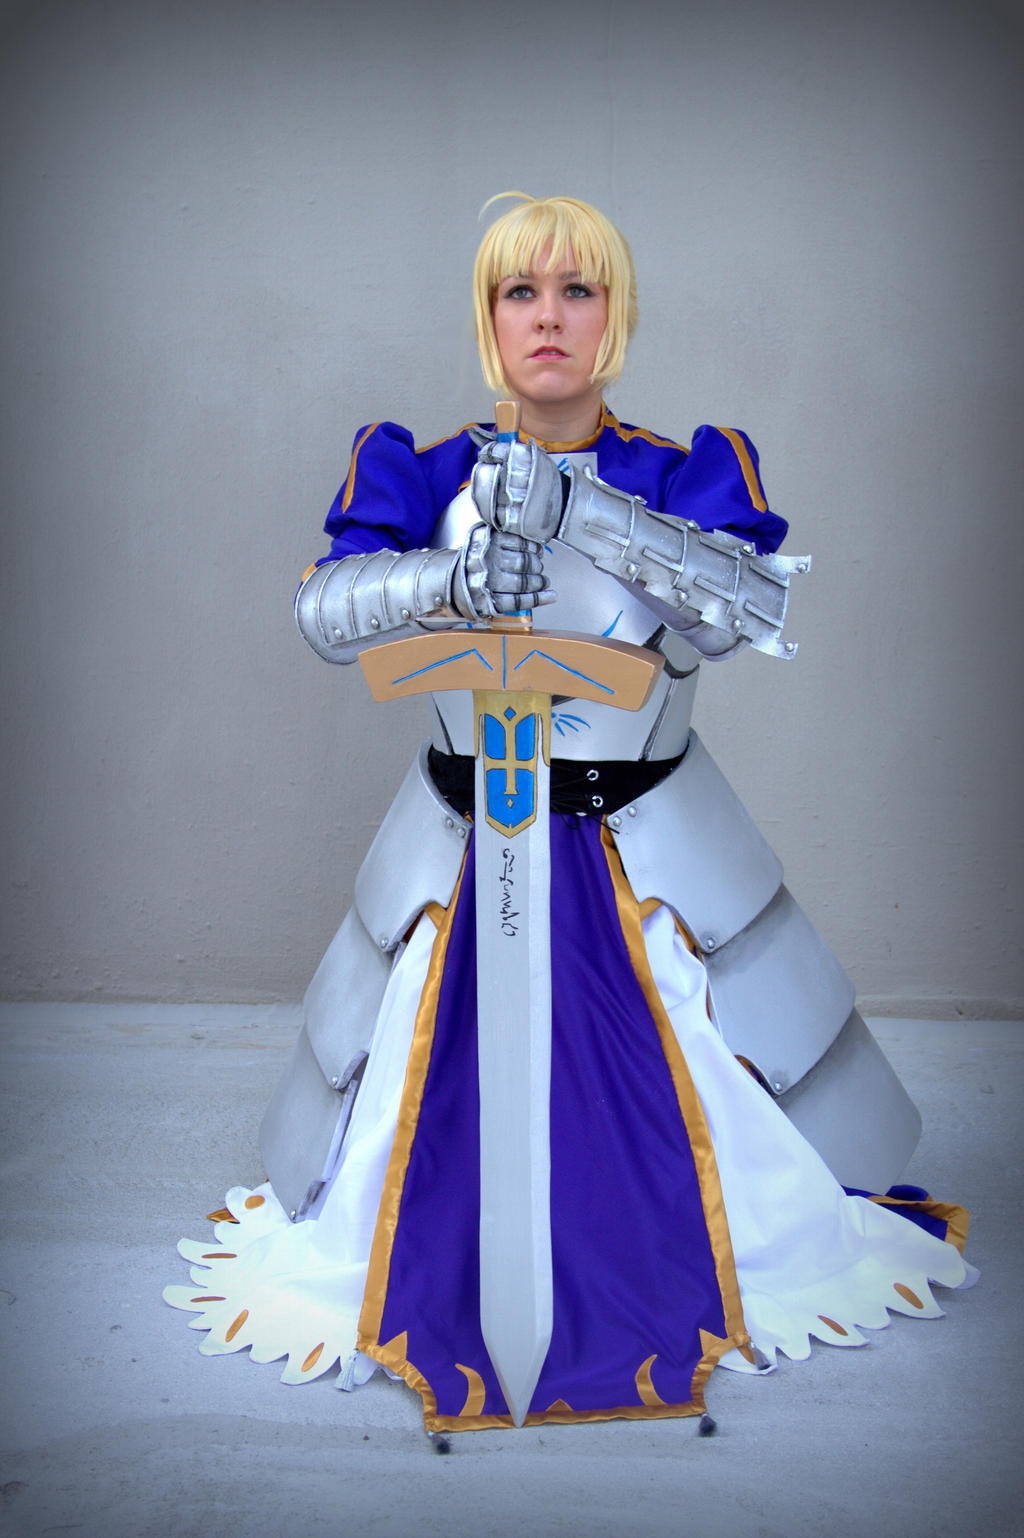 Saber Fate/Stay Night by LookyLolo